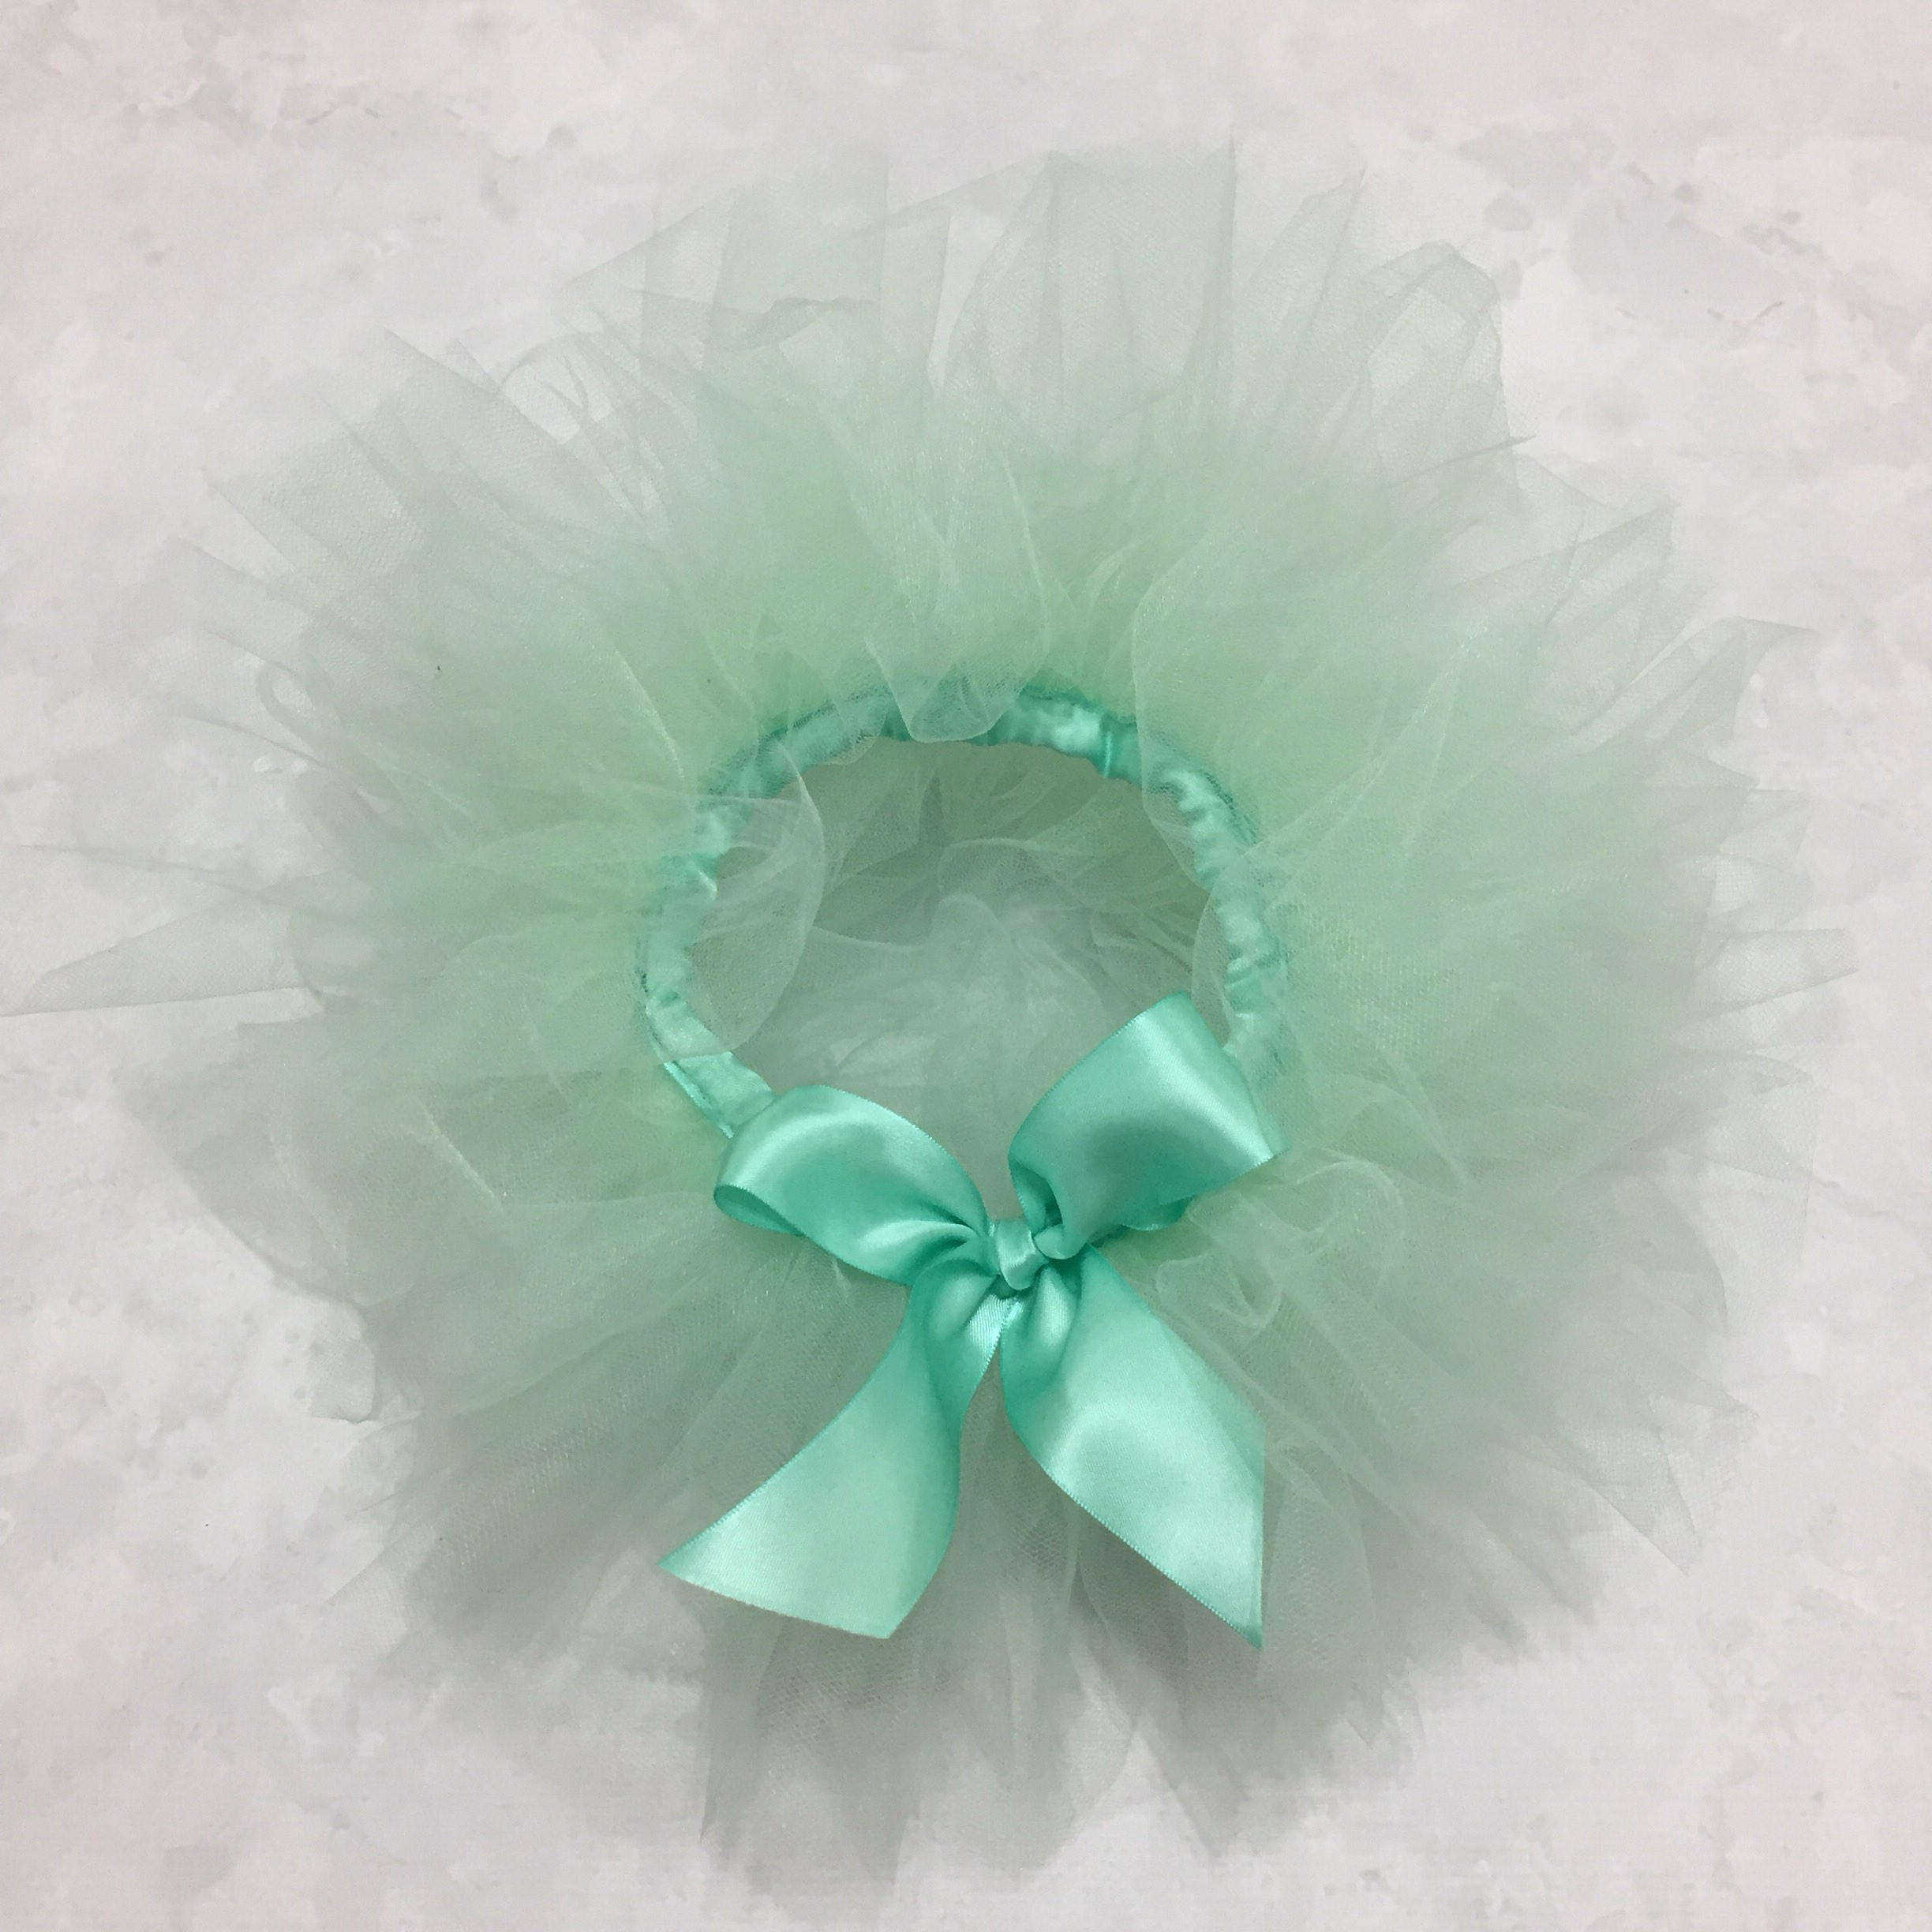 Mint 1st Birthday Tutu Baby Girl First Christmas Gift Ideas 1st Bday Outfit Set Cake Smash Clothing Infant Toddler Child Photo Props